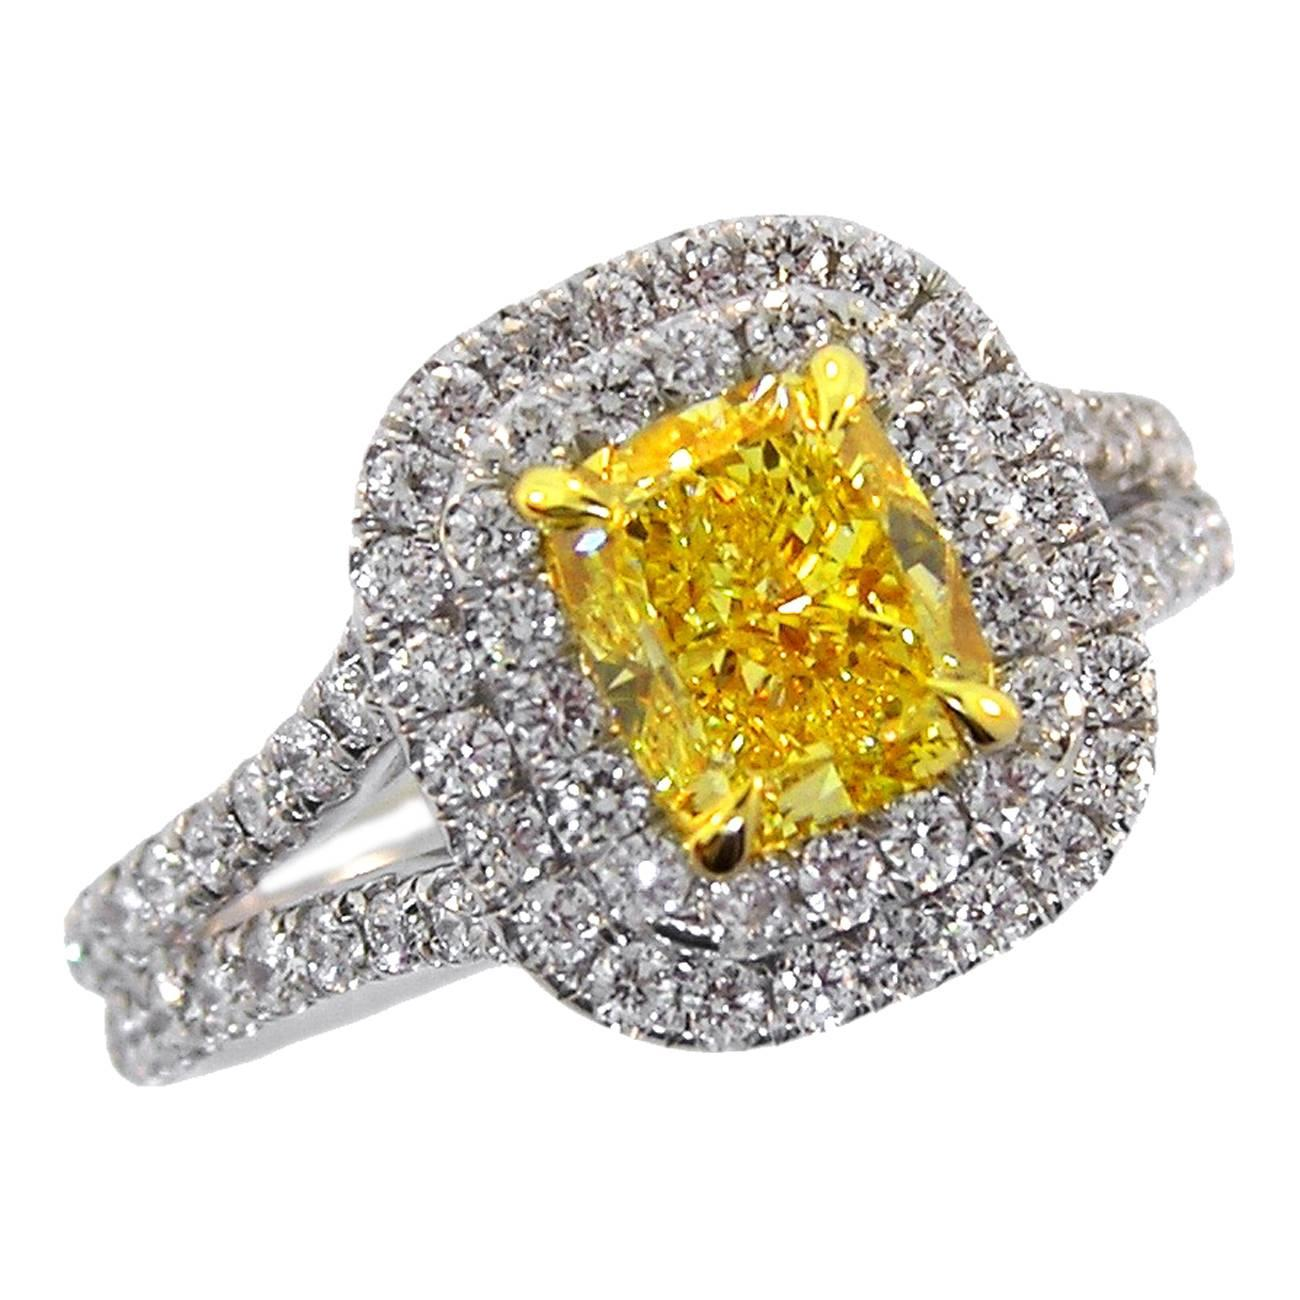 rings fancy main and colored engagement diamond desktop canary jewelry color online stone banner now white black save buy yellow shop